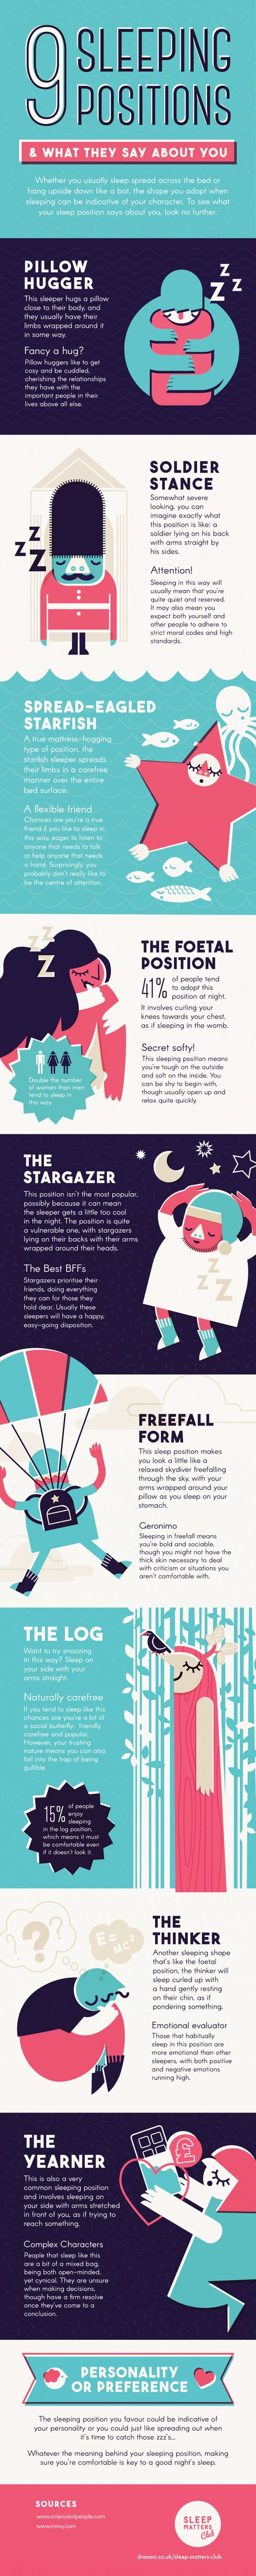 9 sleeping positions and what they say about your personality